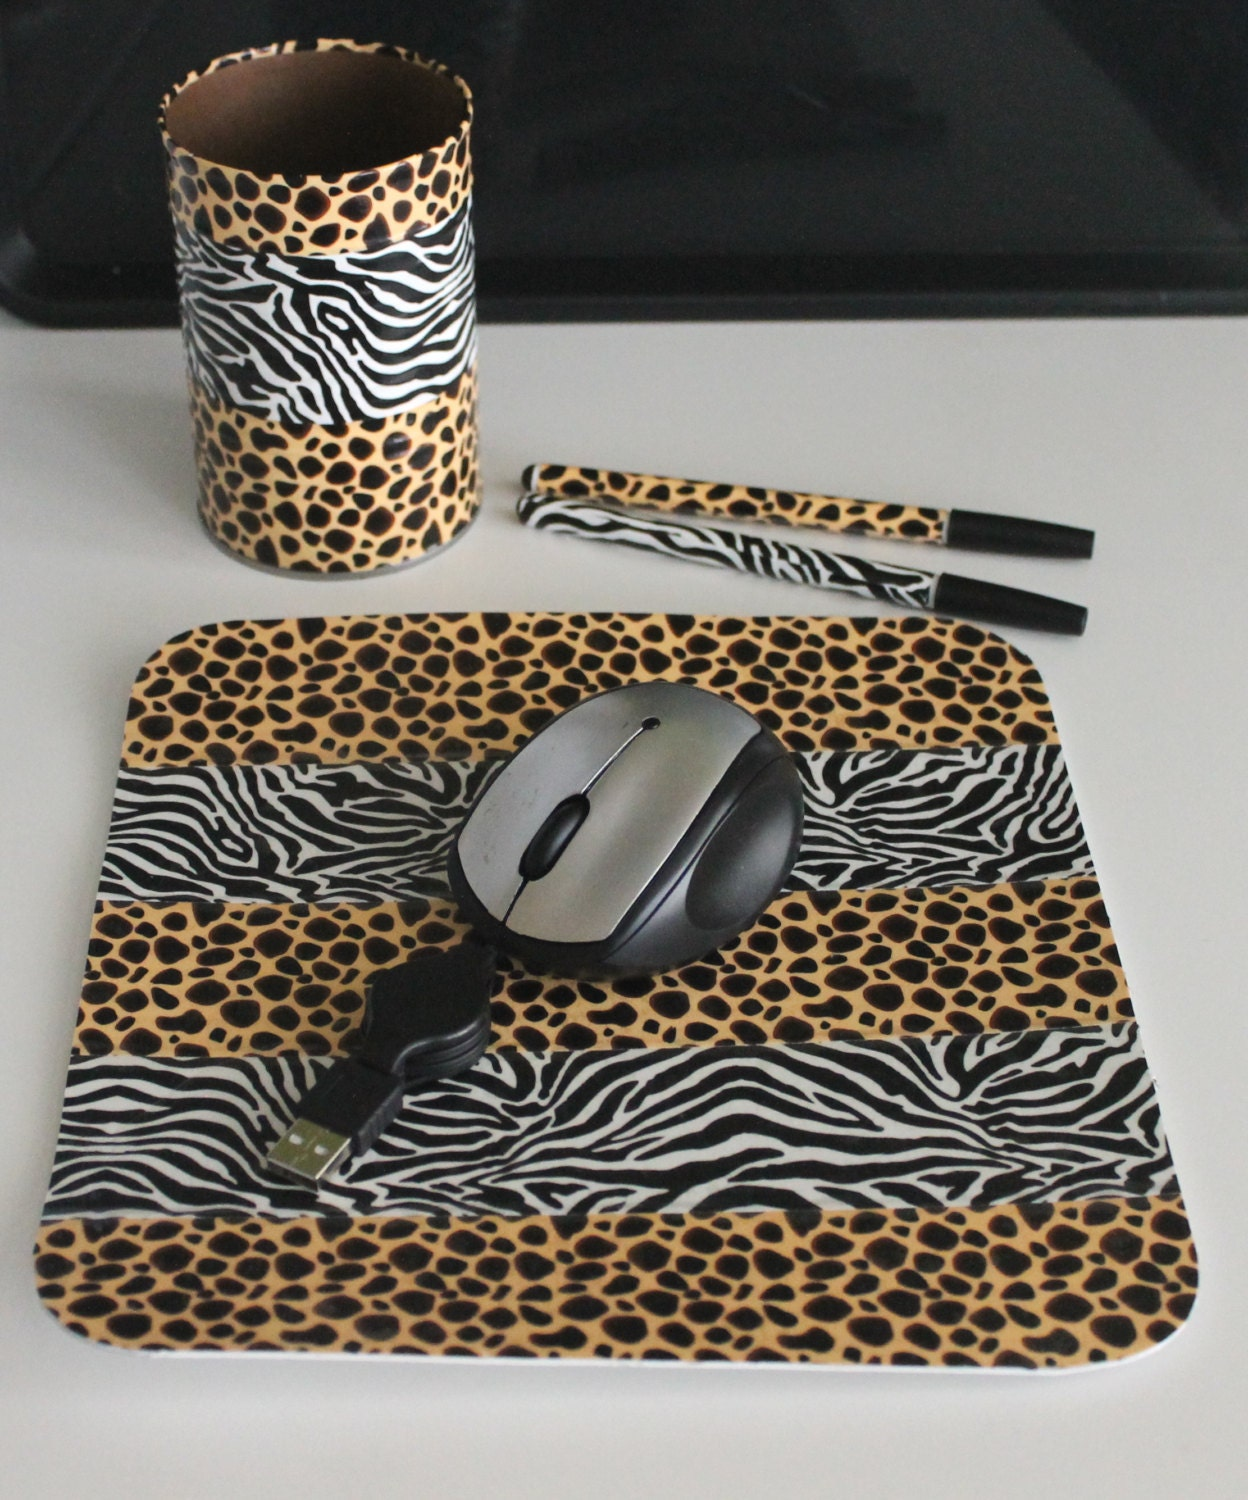 Leopard Desk Images Reverse Search